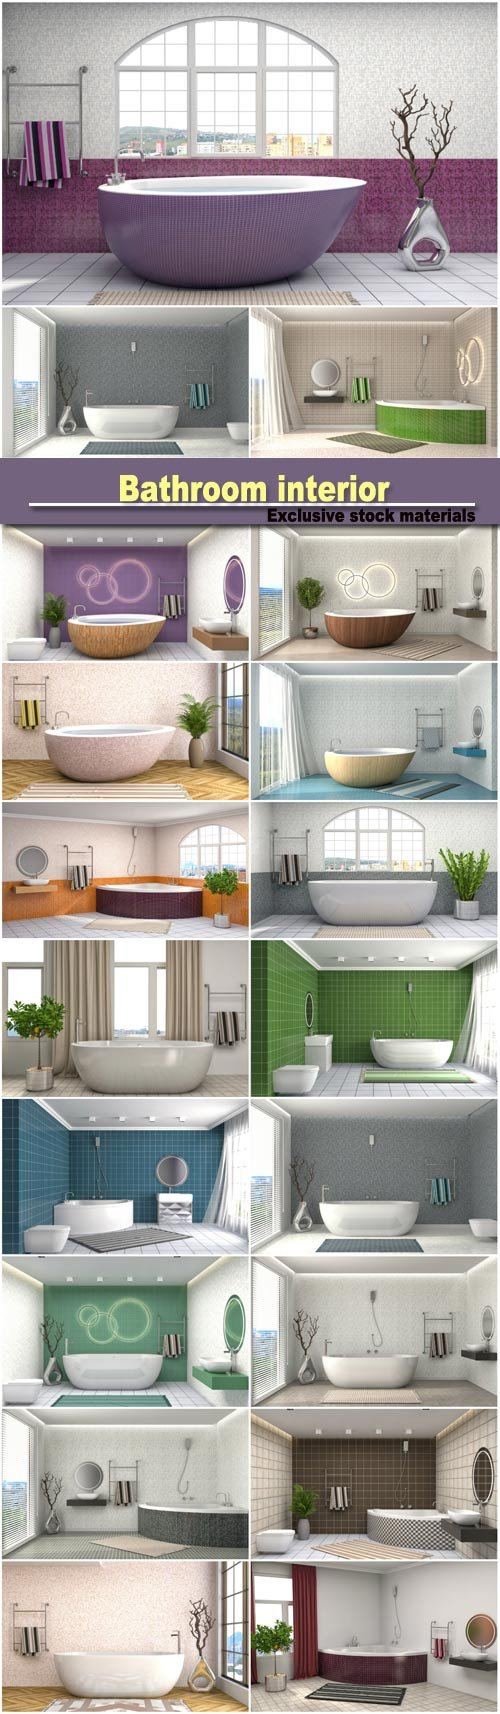 Bathroom interior, 3D illustration